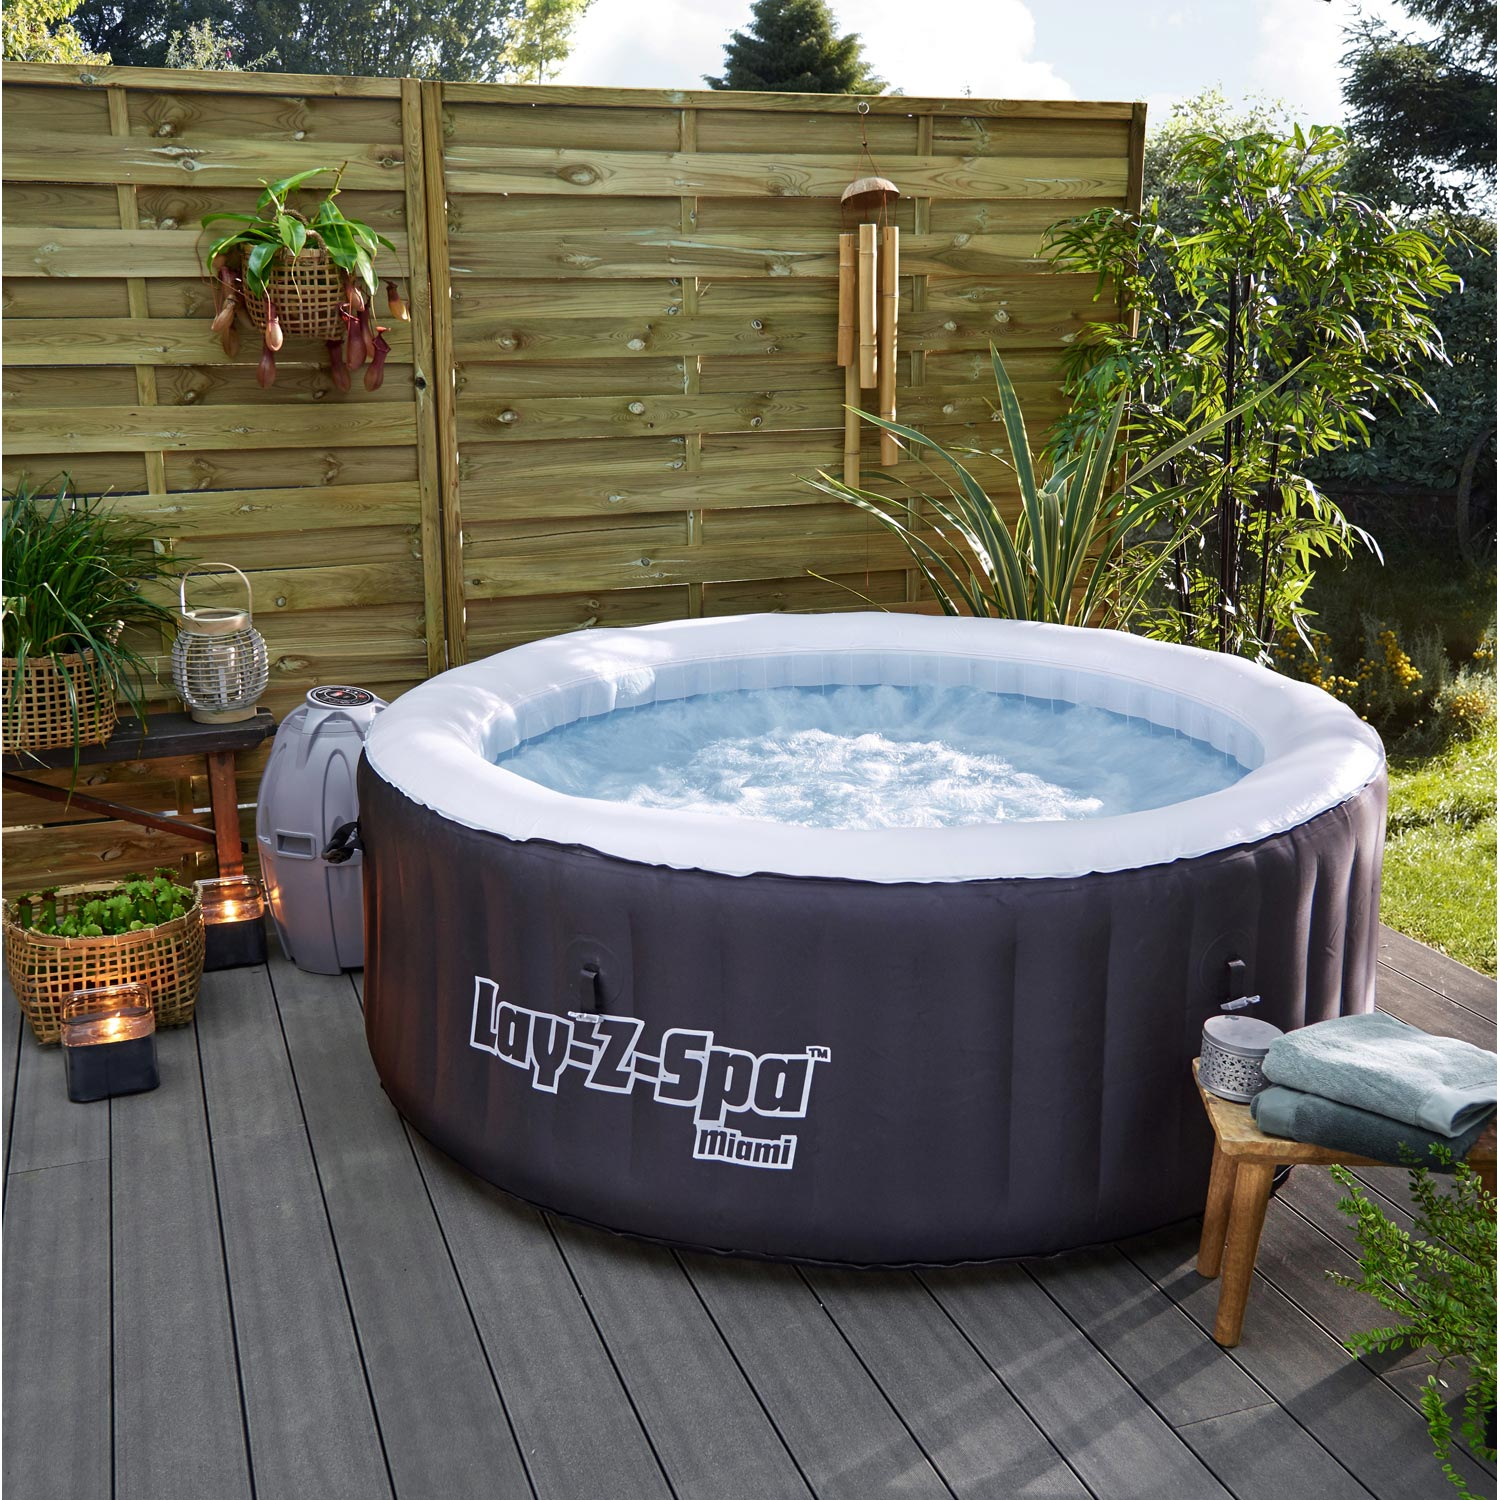 Spa gonflable bestway miami rond 4 places assises leroy - Jacuzzi exterieur leroy merlin ...